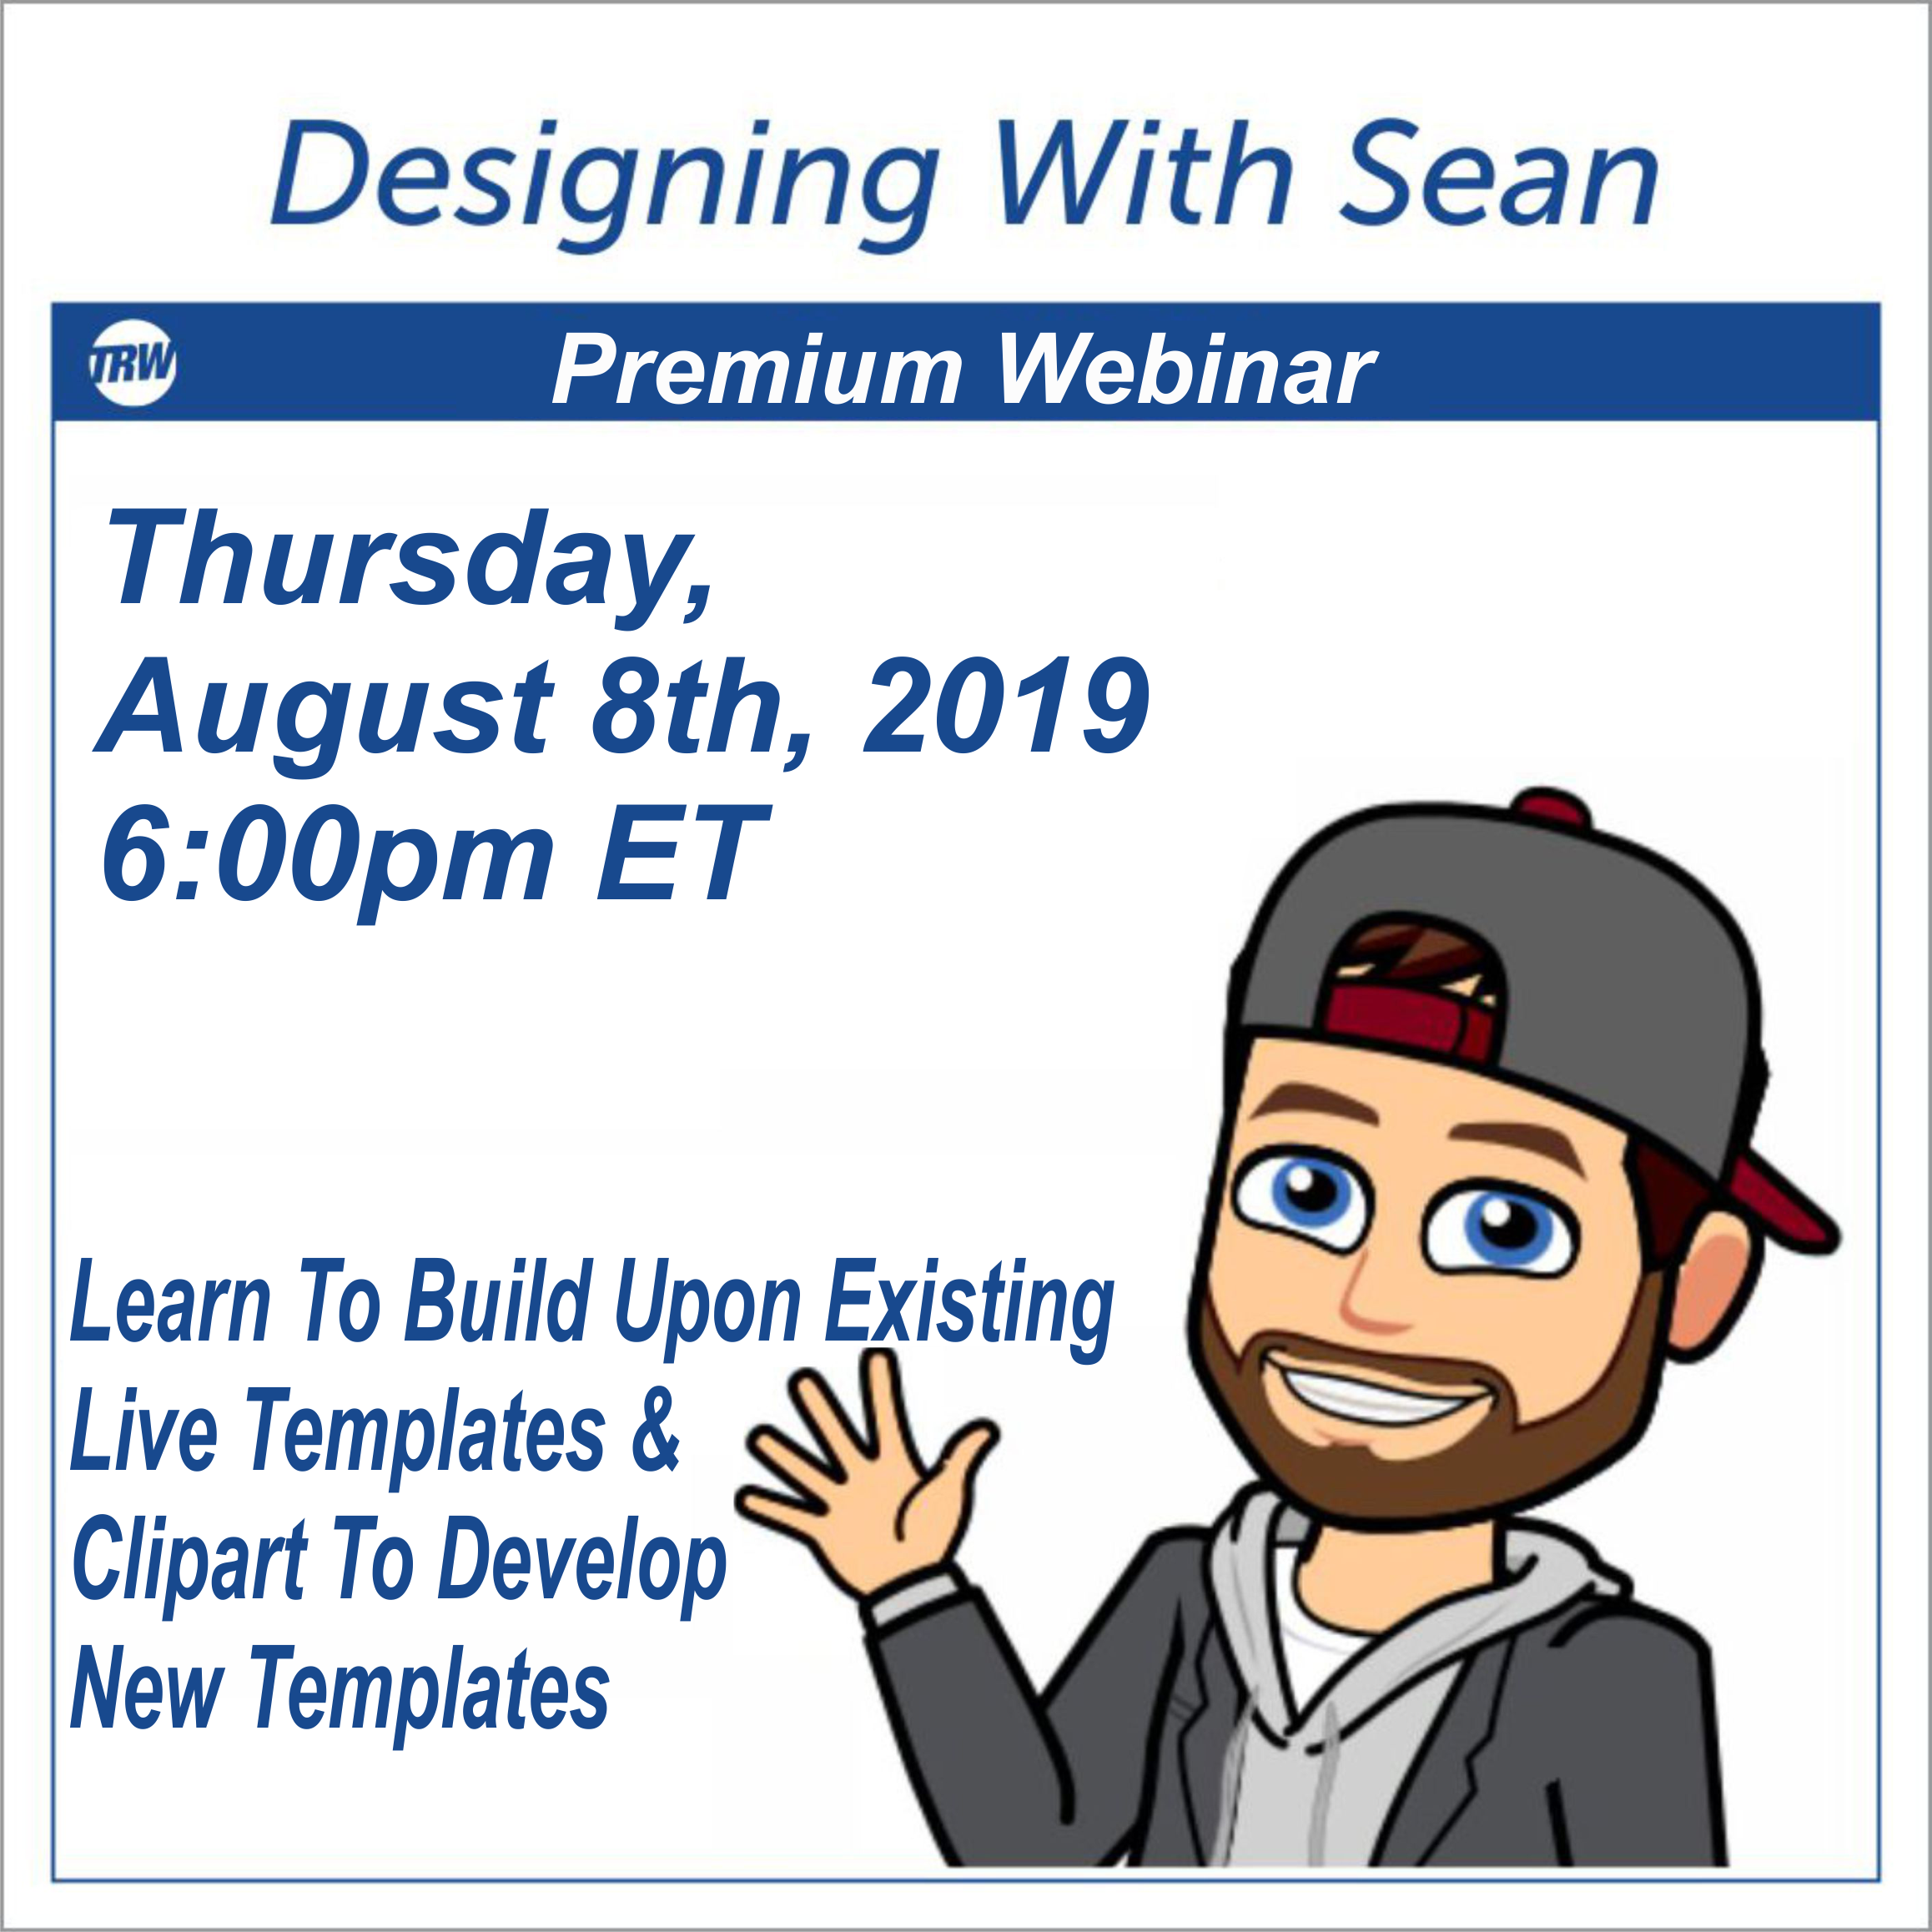 Designing with Sean - Learn to build upon existing Live Templates and Clipart to develop new templates